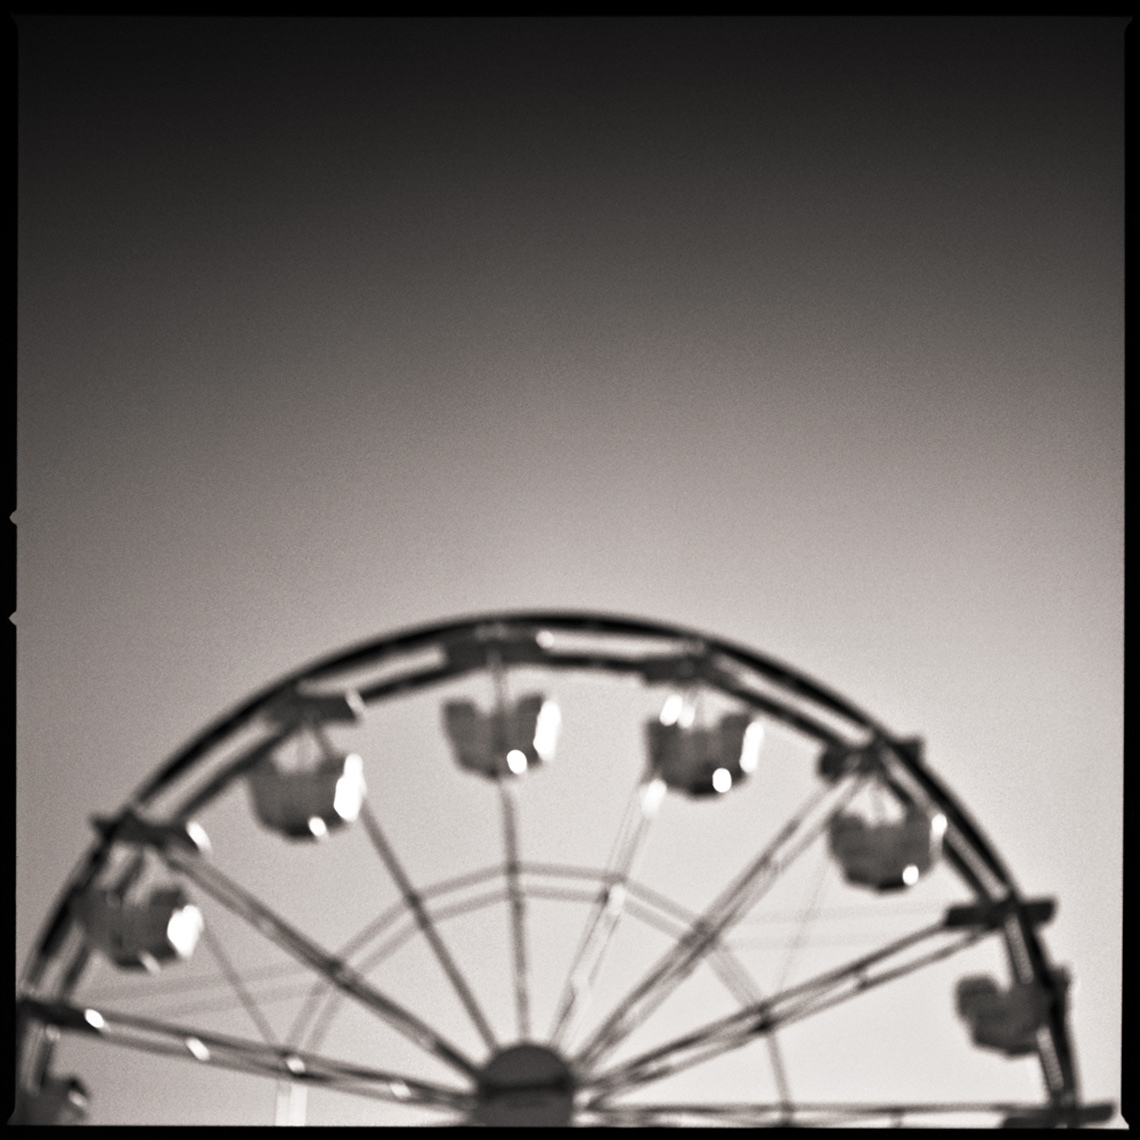 Sean Perry Photographs • Spin, from the series Fairgrounds